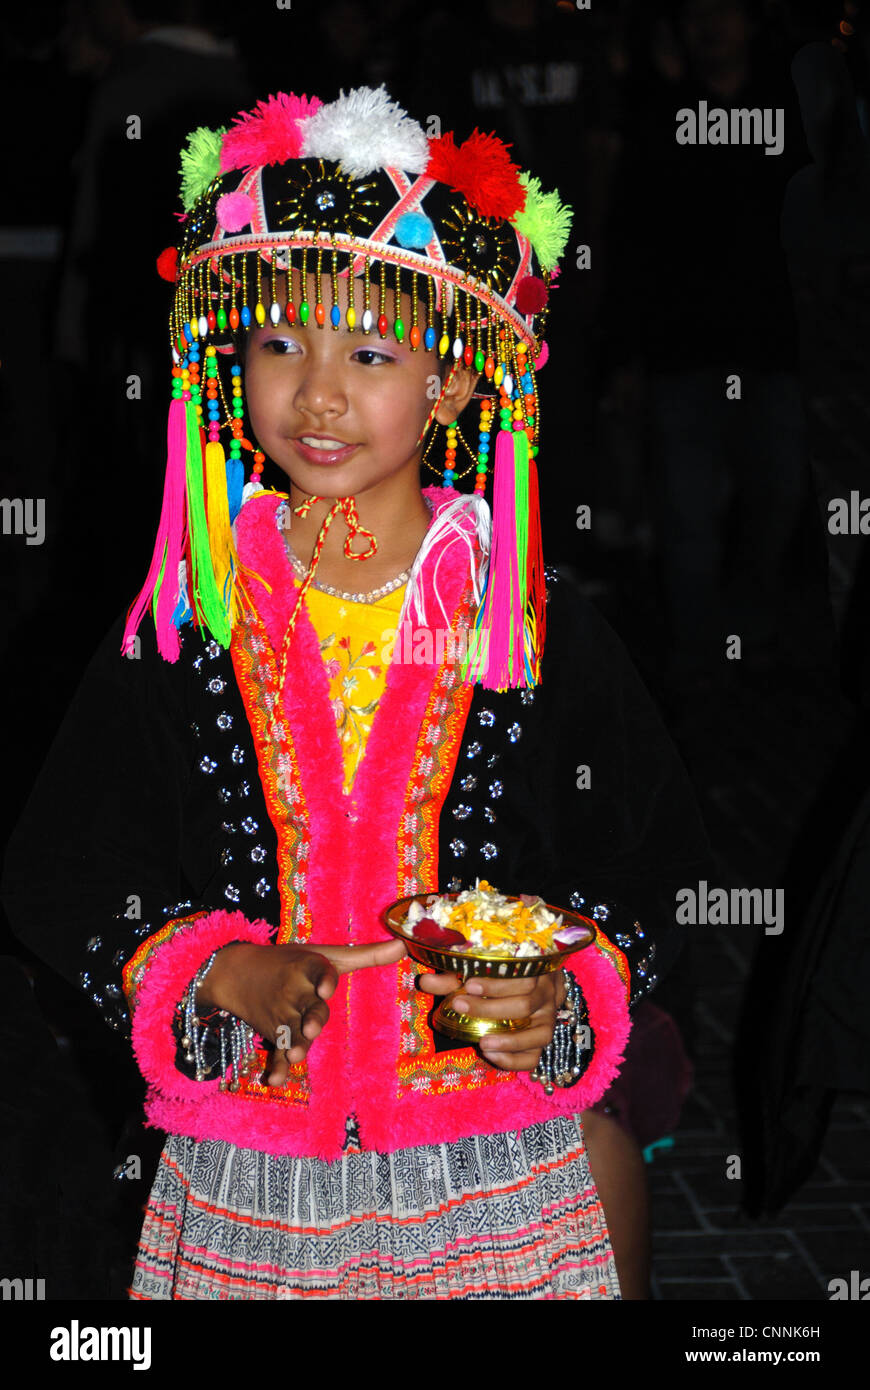 small mong hilltribe child dancing in the the sunday market on 14/12/2008 in chiang mai Thailand - Stock Image